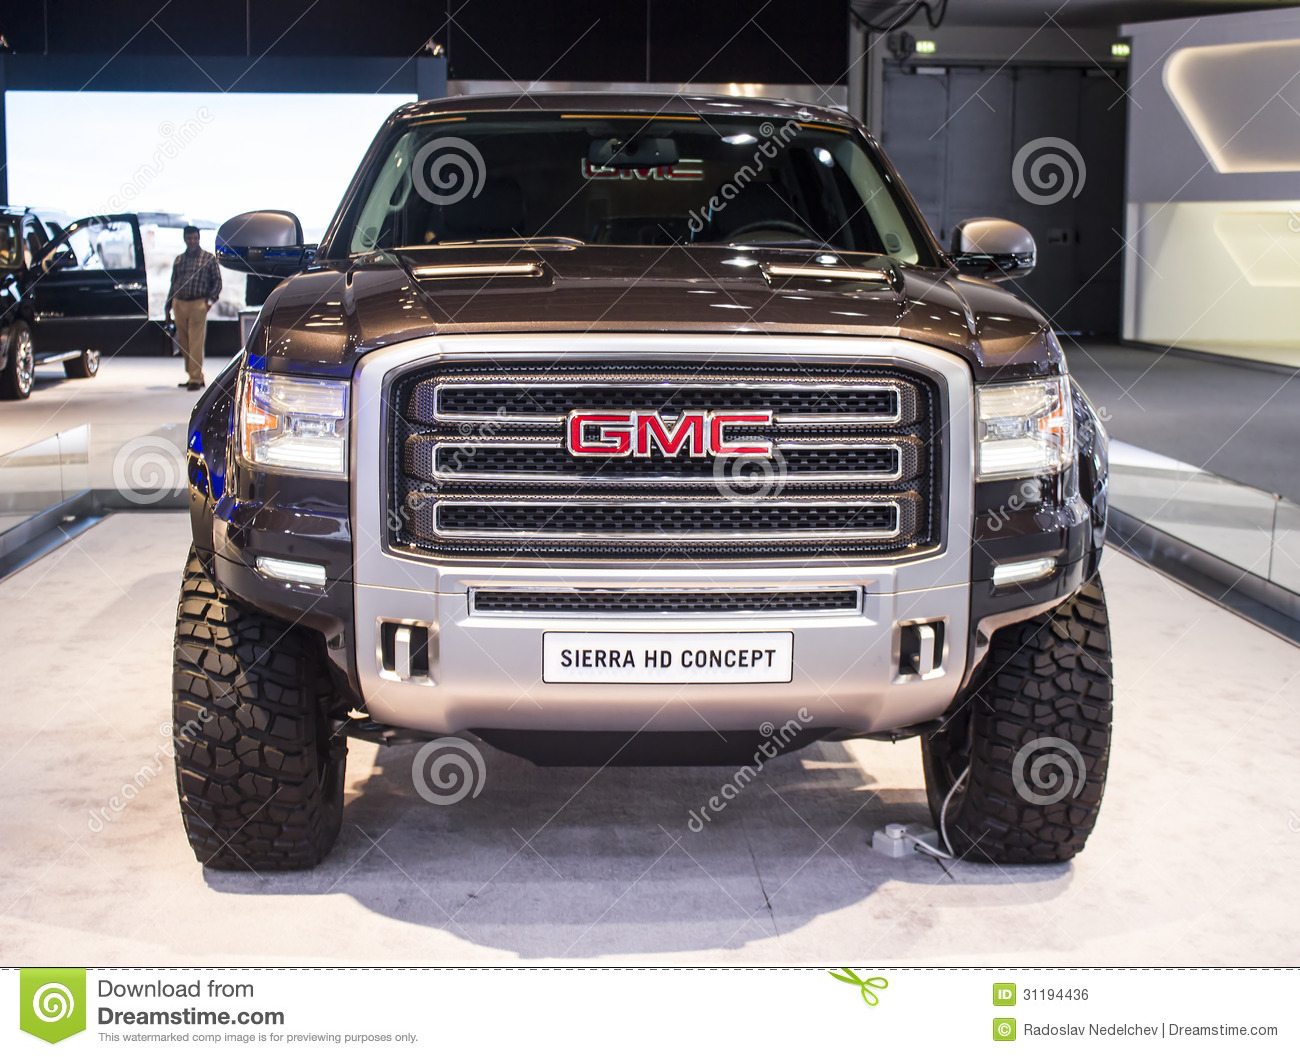 hight resolution of dubai uae november 14 2011 gmc sierra hd concept on display at the dubai motor show uae